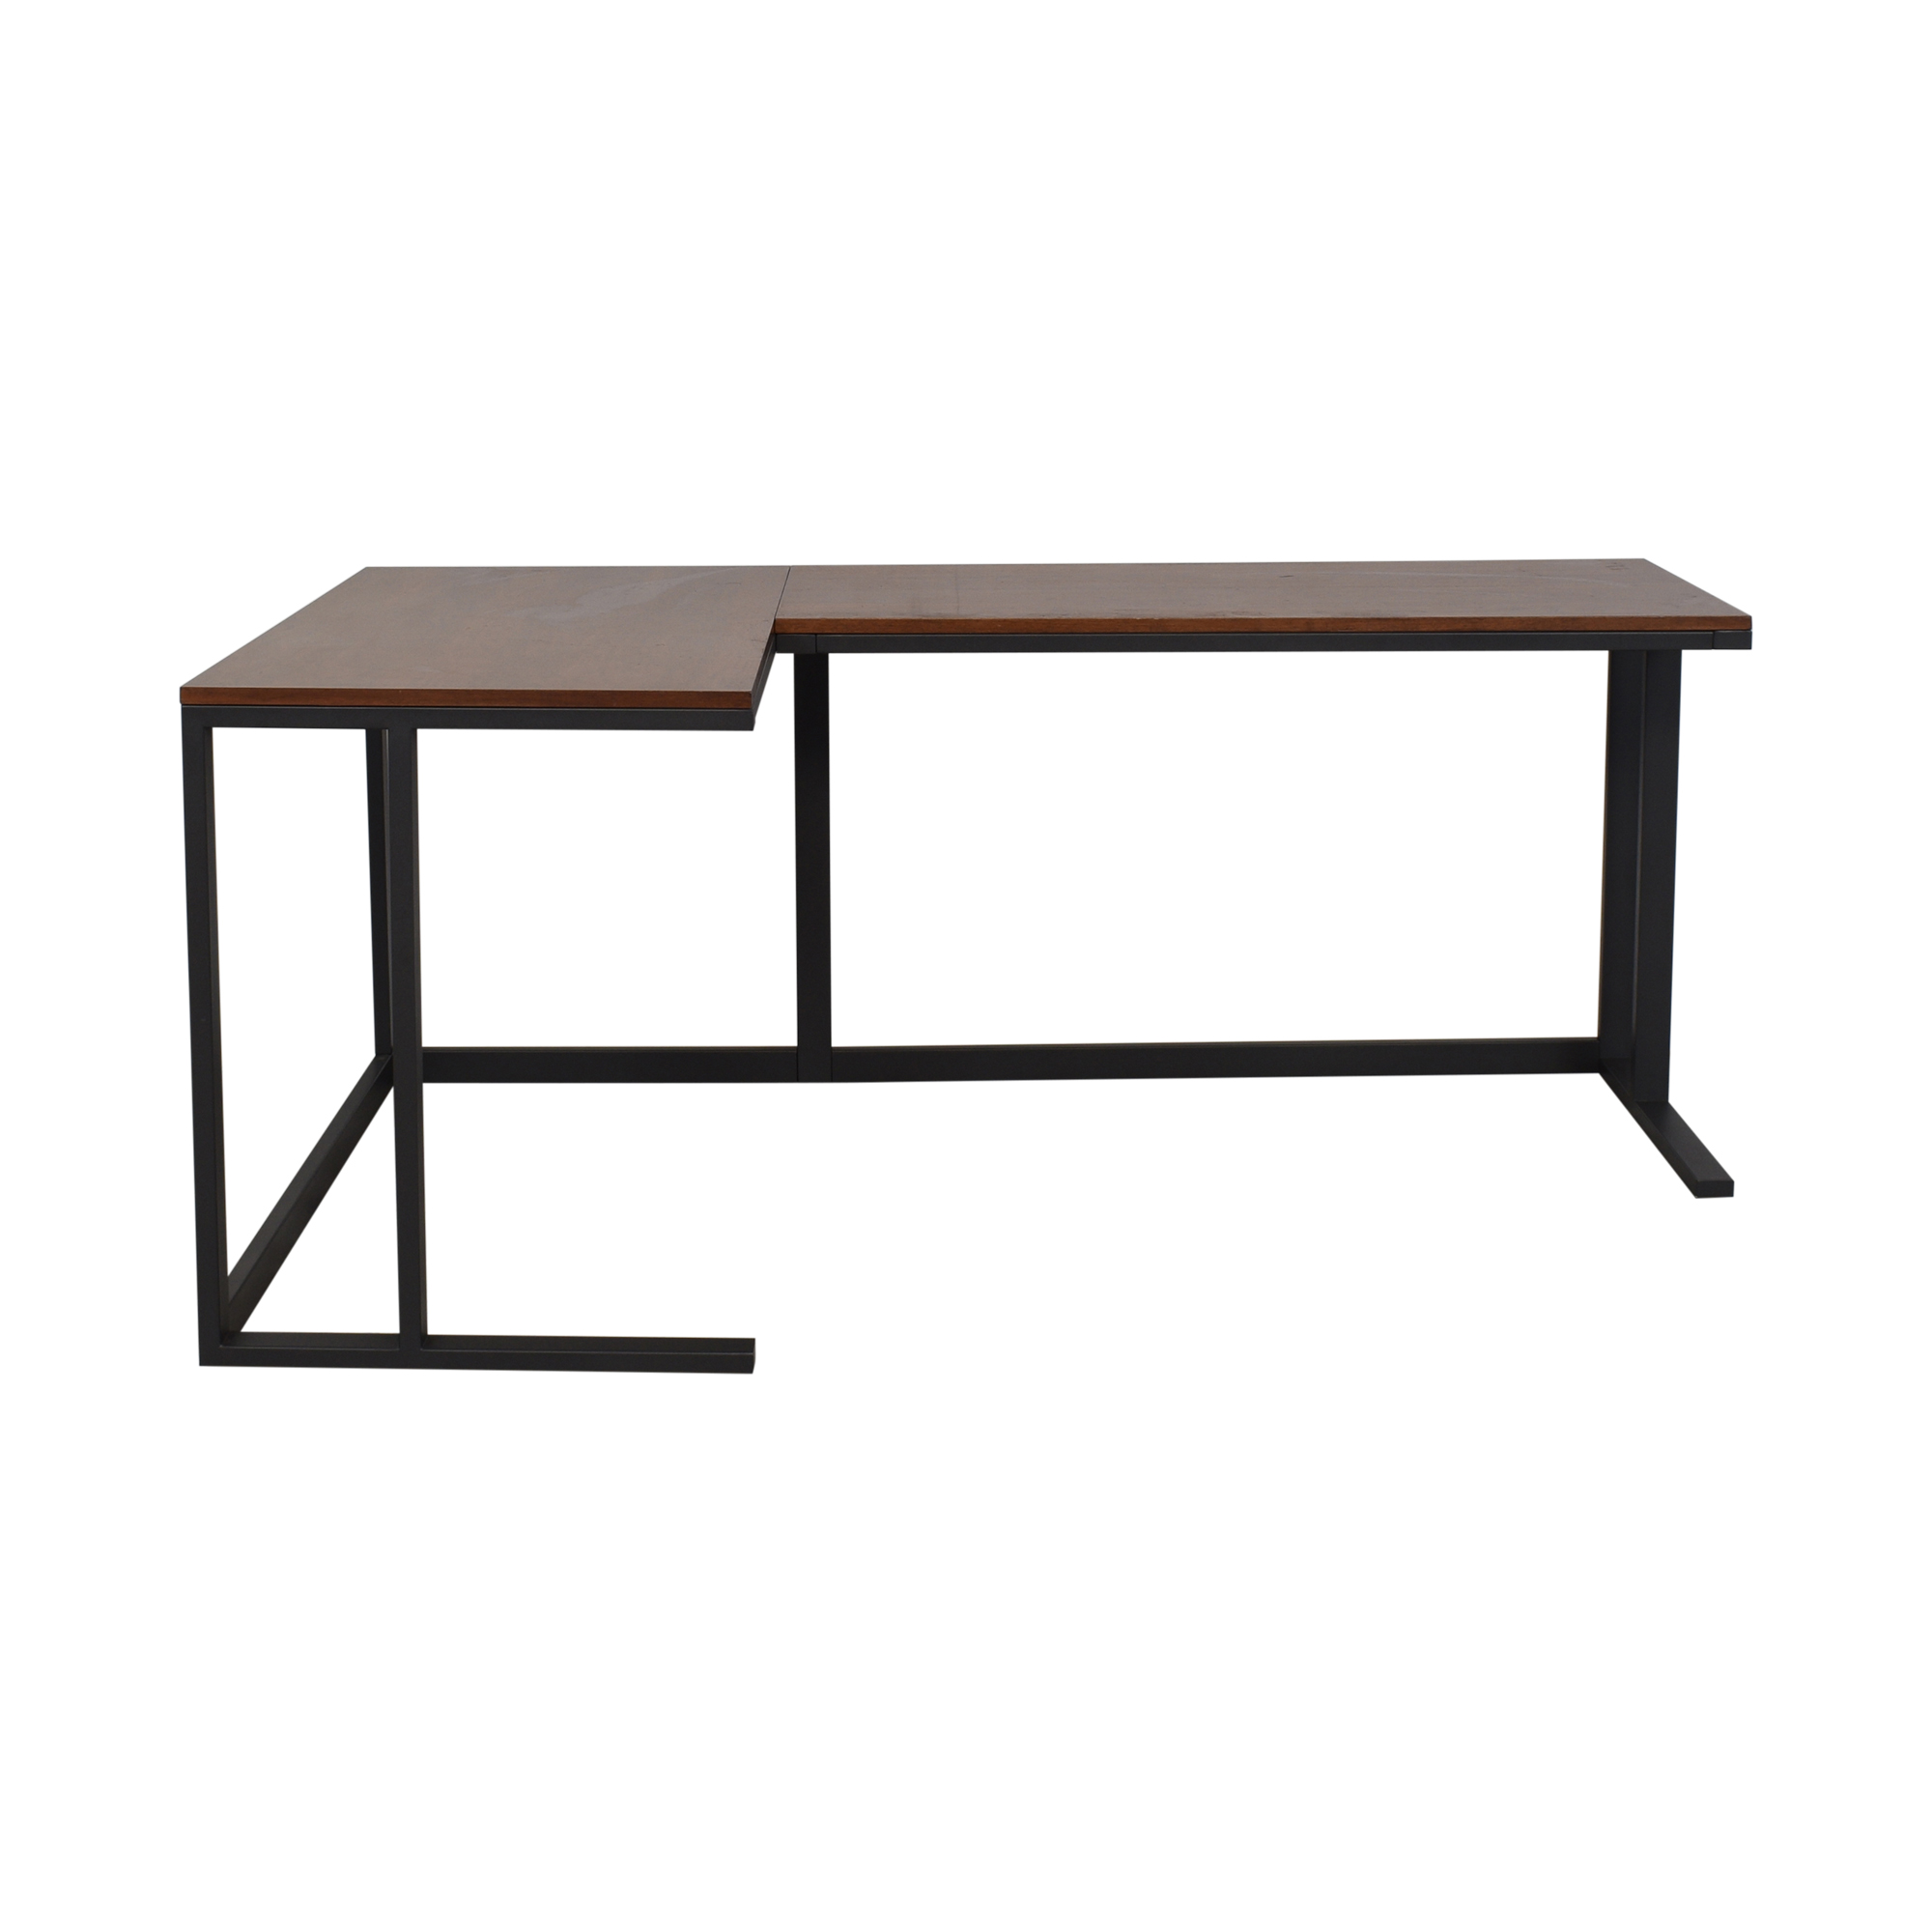 buy Crate & Barrel Crate & Barrel Pilsen Corner Desk online